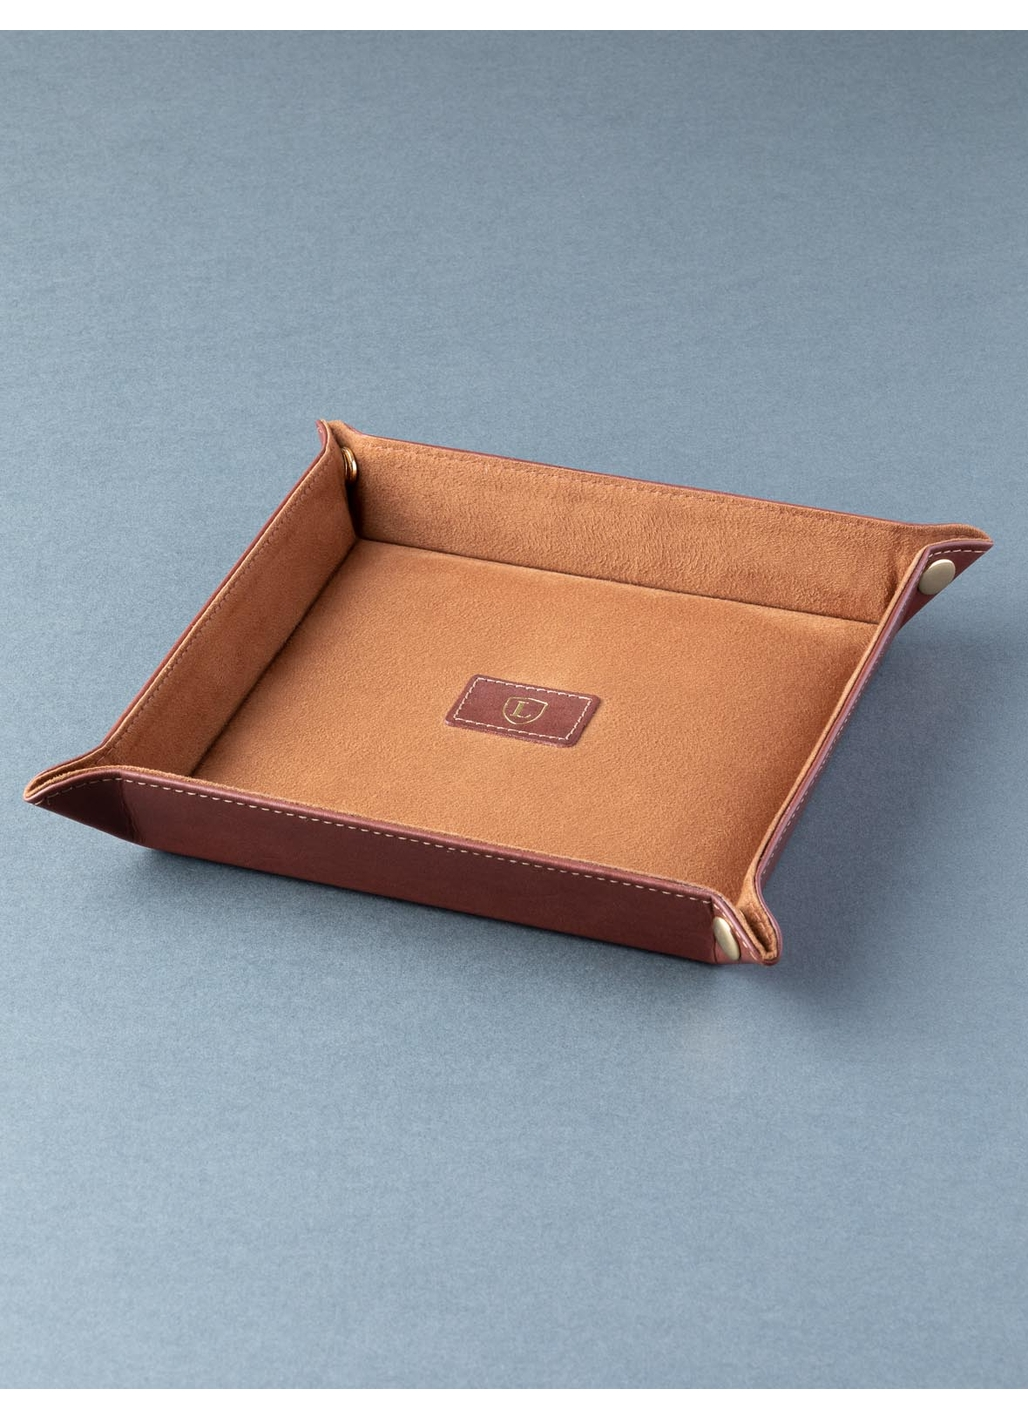 Ascari Key and Coin Tray in Brown